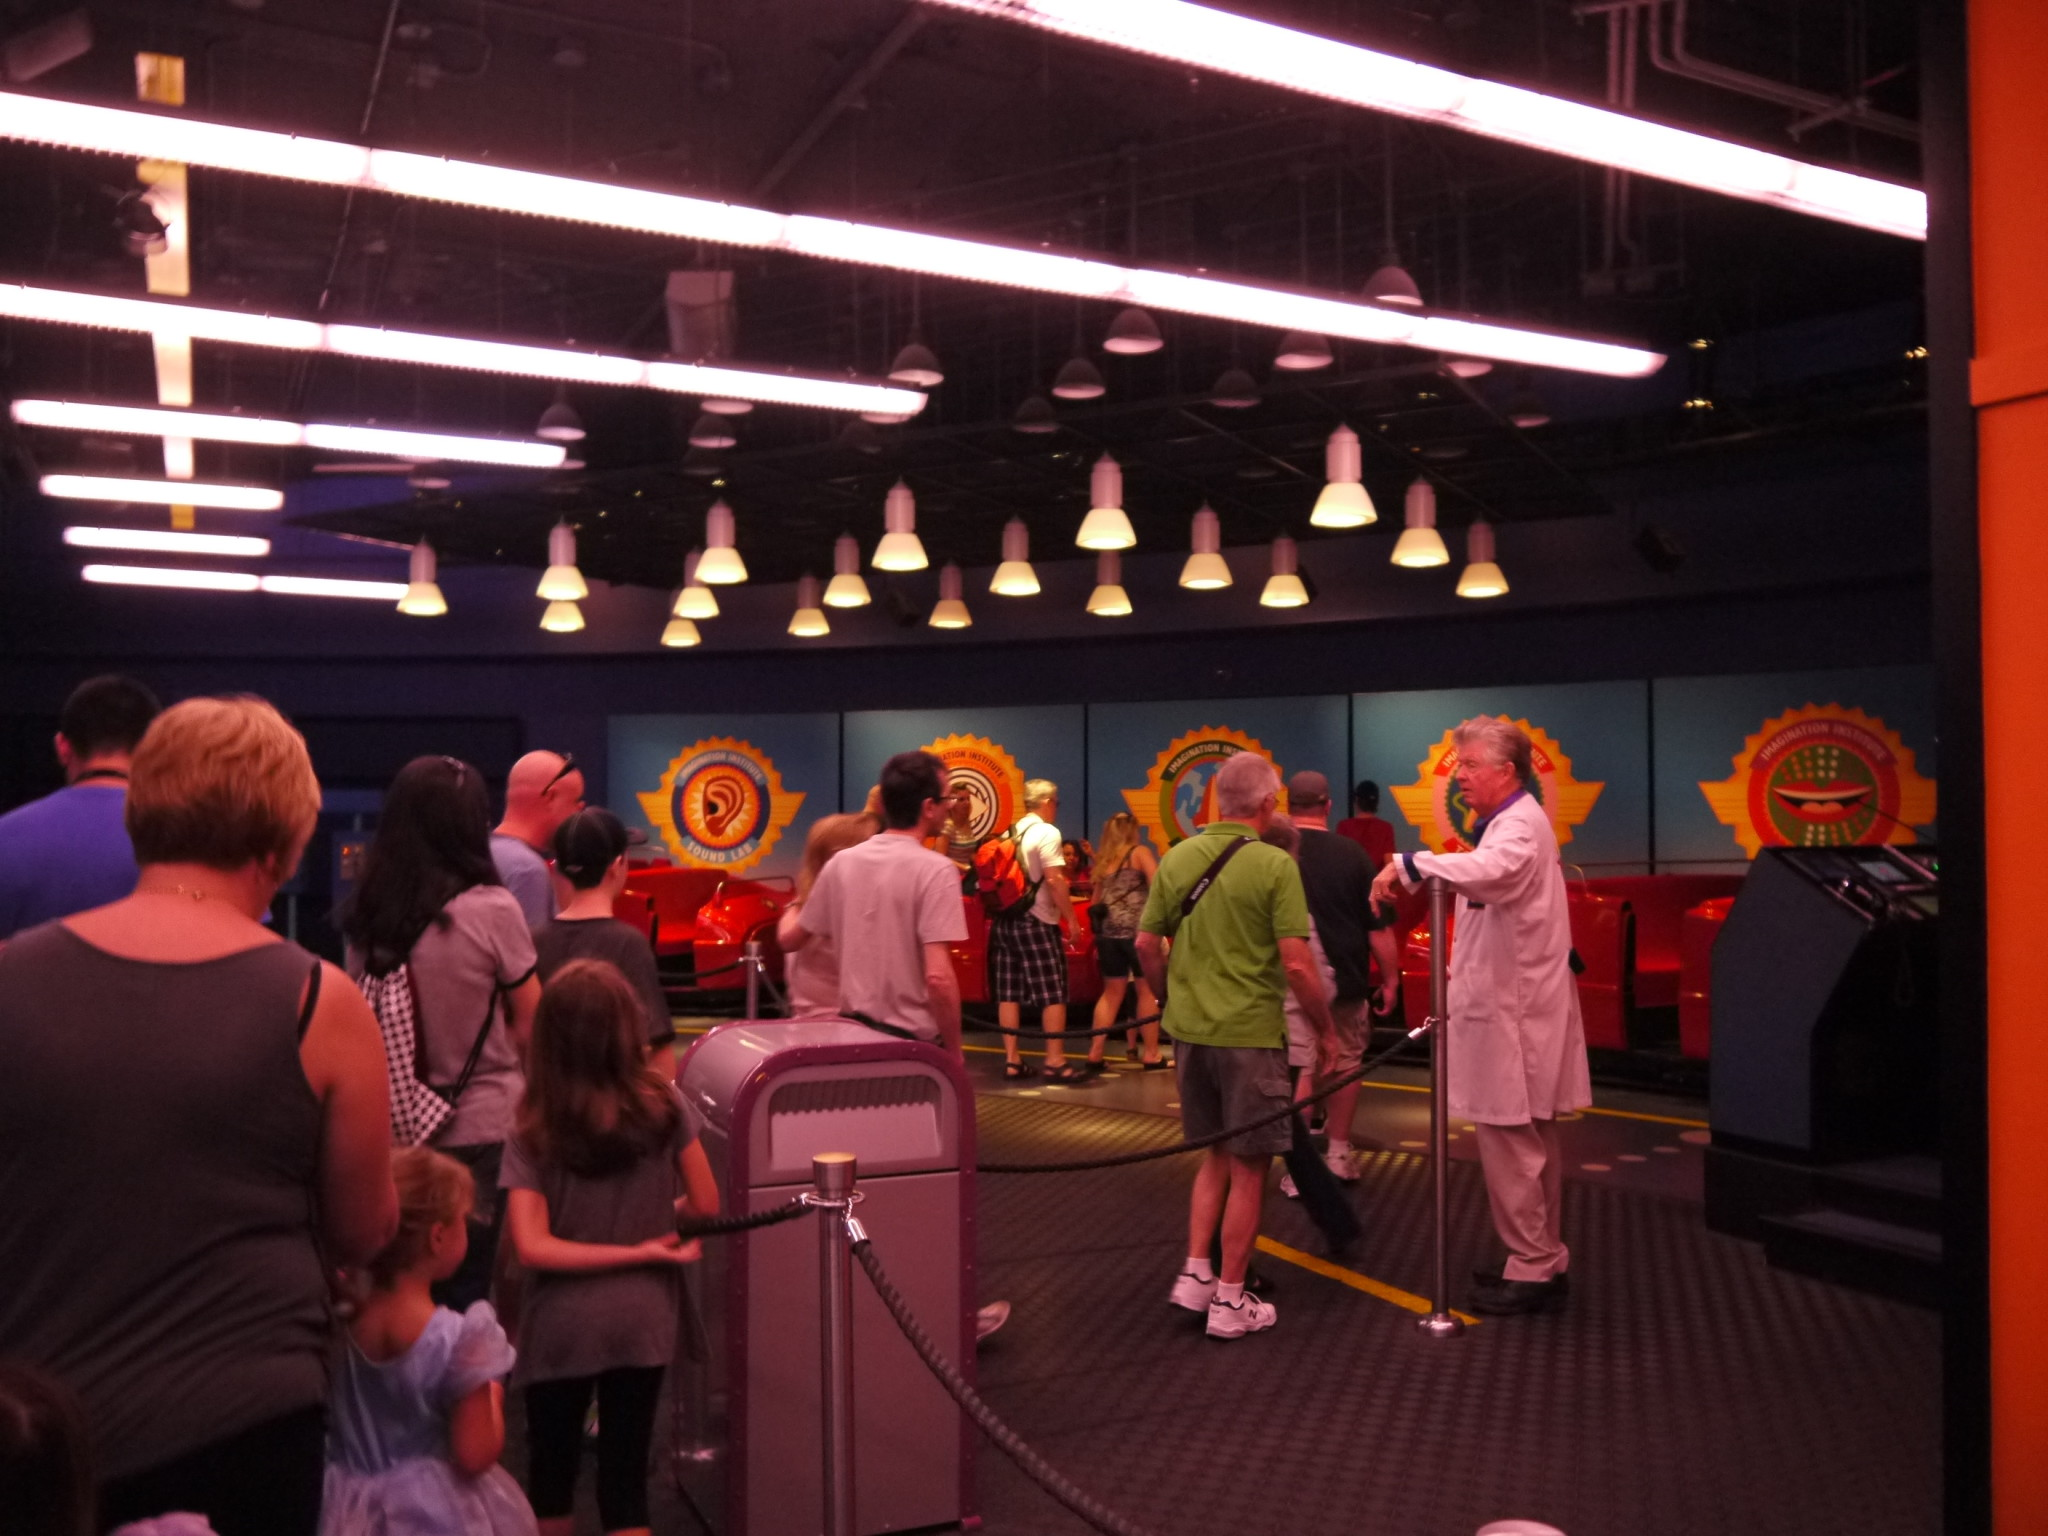 Disney Quick Tip - Fun games to play while waiting in line!